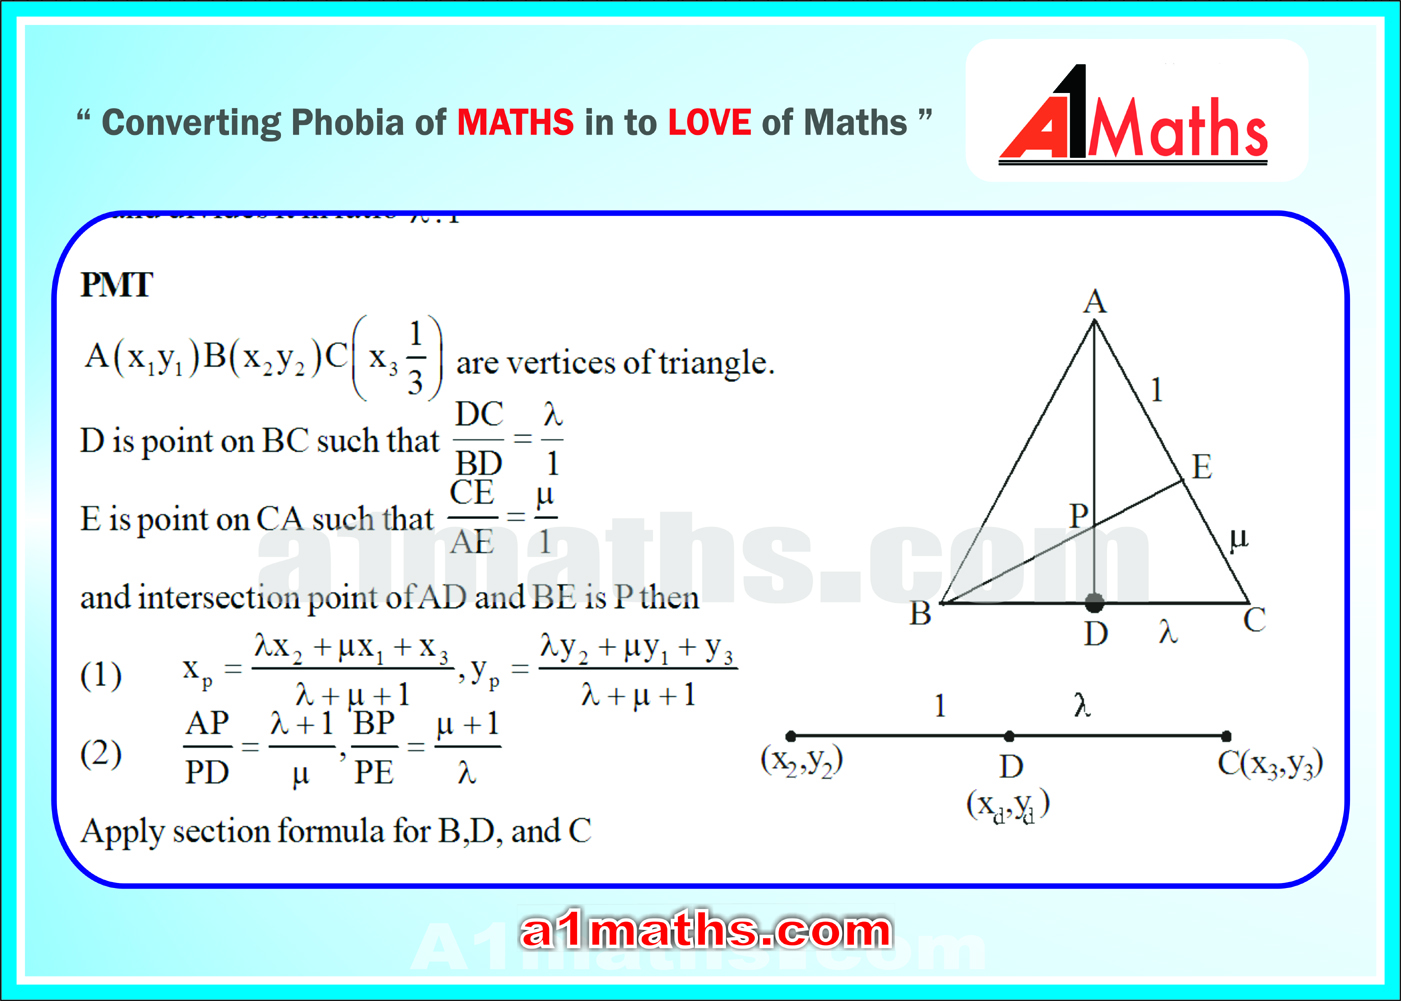 Coordinate geometry iit jee mainsadvanced free study material section formula its converse and applications ccuart Images